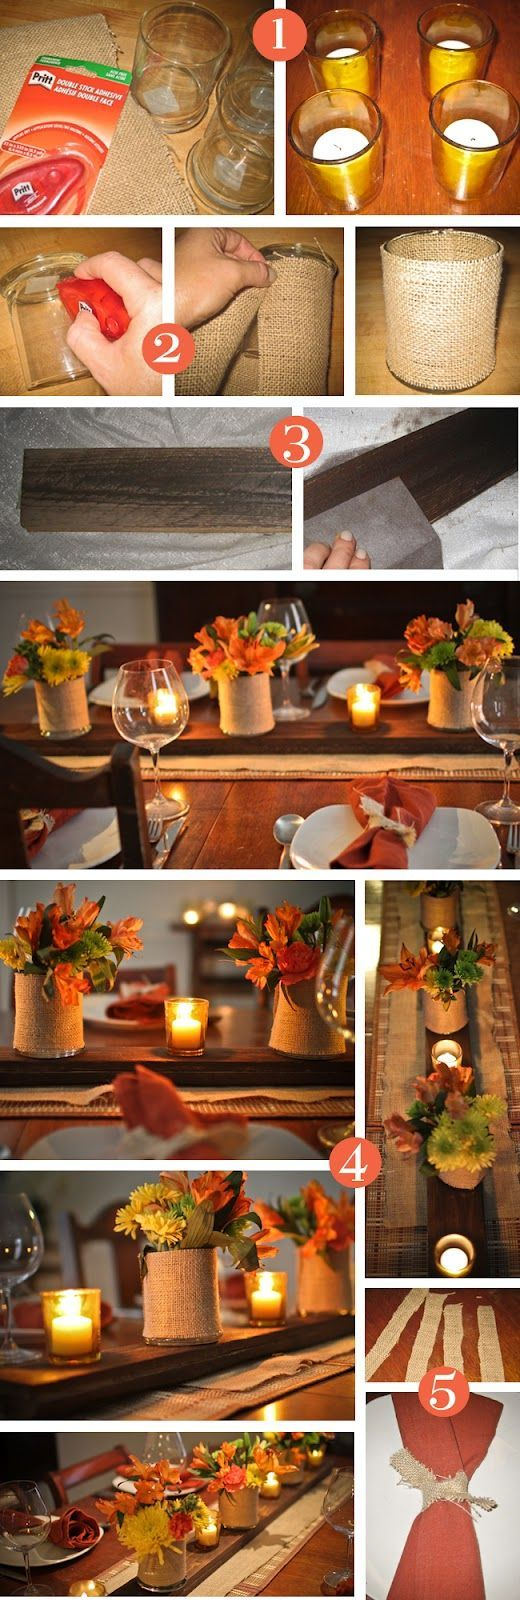 Lovely fall table idea using materials you already have in your home.